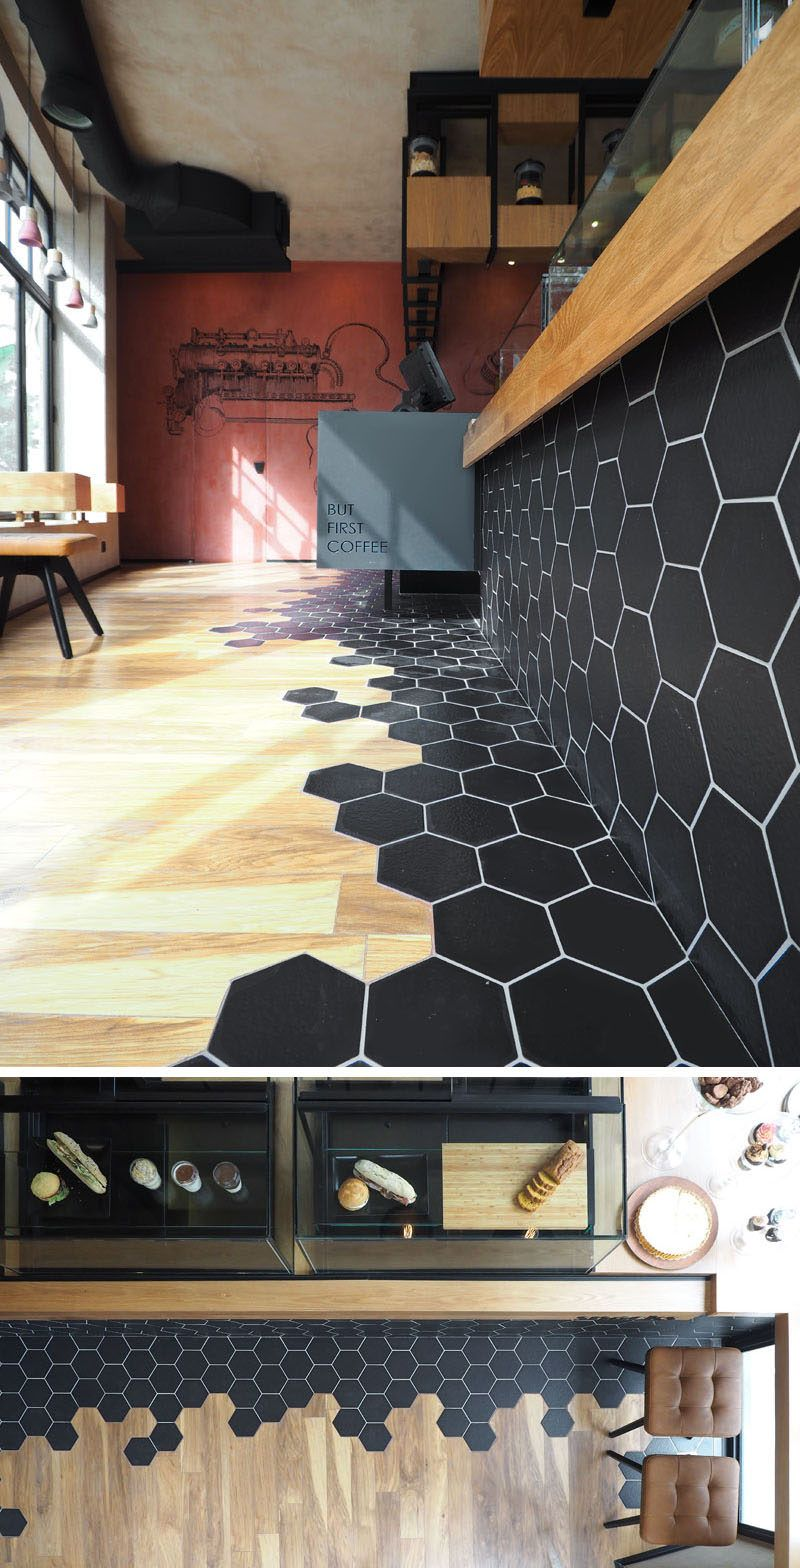 Hexagon Tiles Transition Into Wood Flooring Inside This Cafe In ...